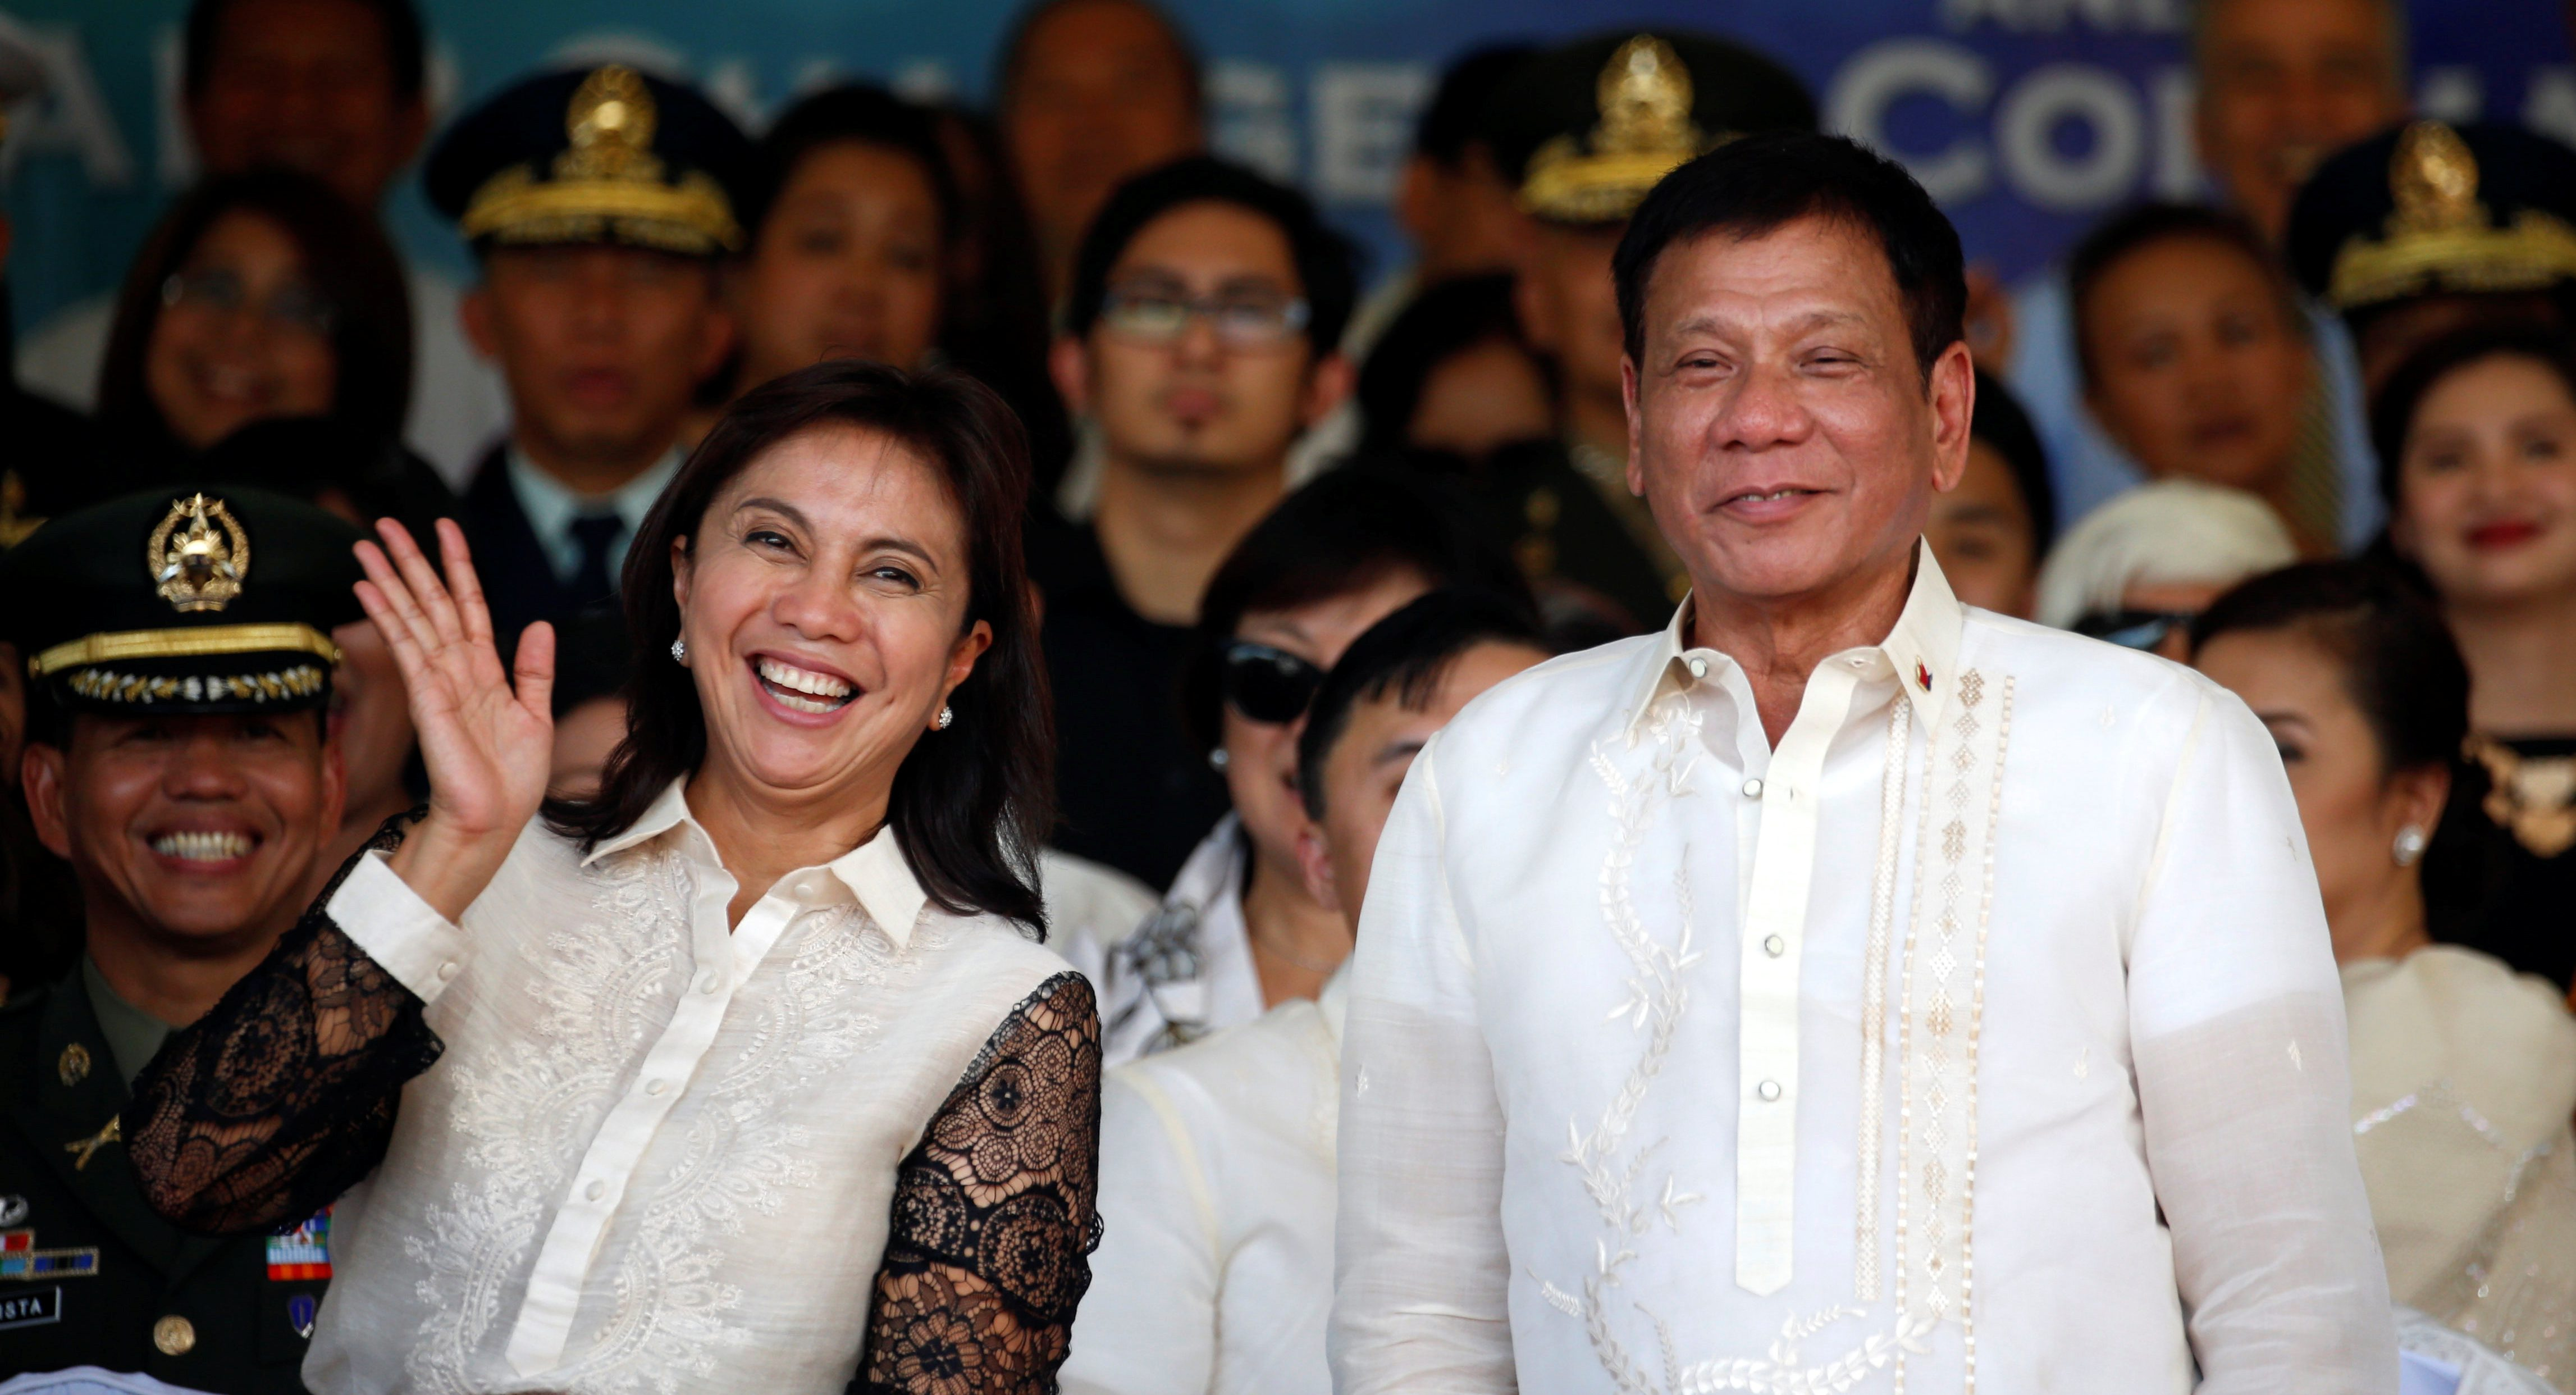 Philippines President Rodrigo Duterte and Vice President Leni Robredo pose after a military parade at main military Camp Aguinaldo in Quezon city Metro  Manila, Philippines July 1, 2016.  REUTERS/Erik De Castro     TPX IMAGES OF THE DAY      - RTX2J6JT